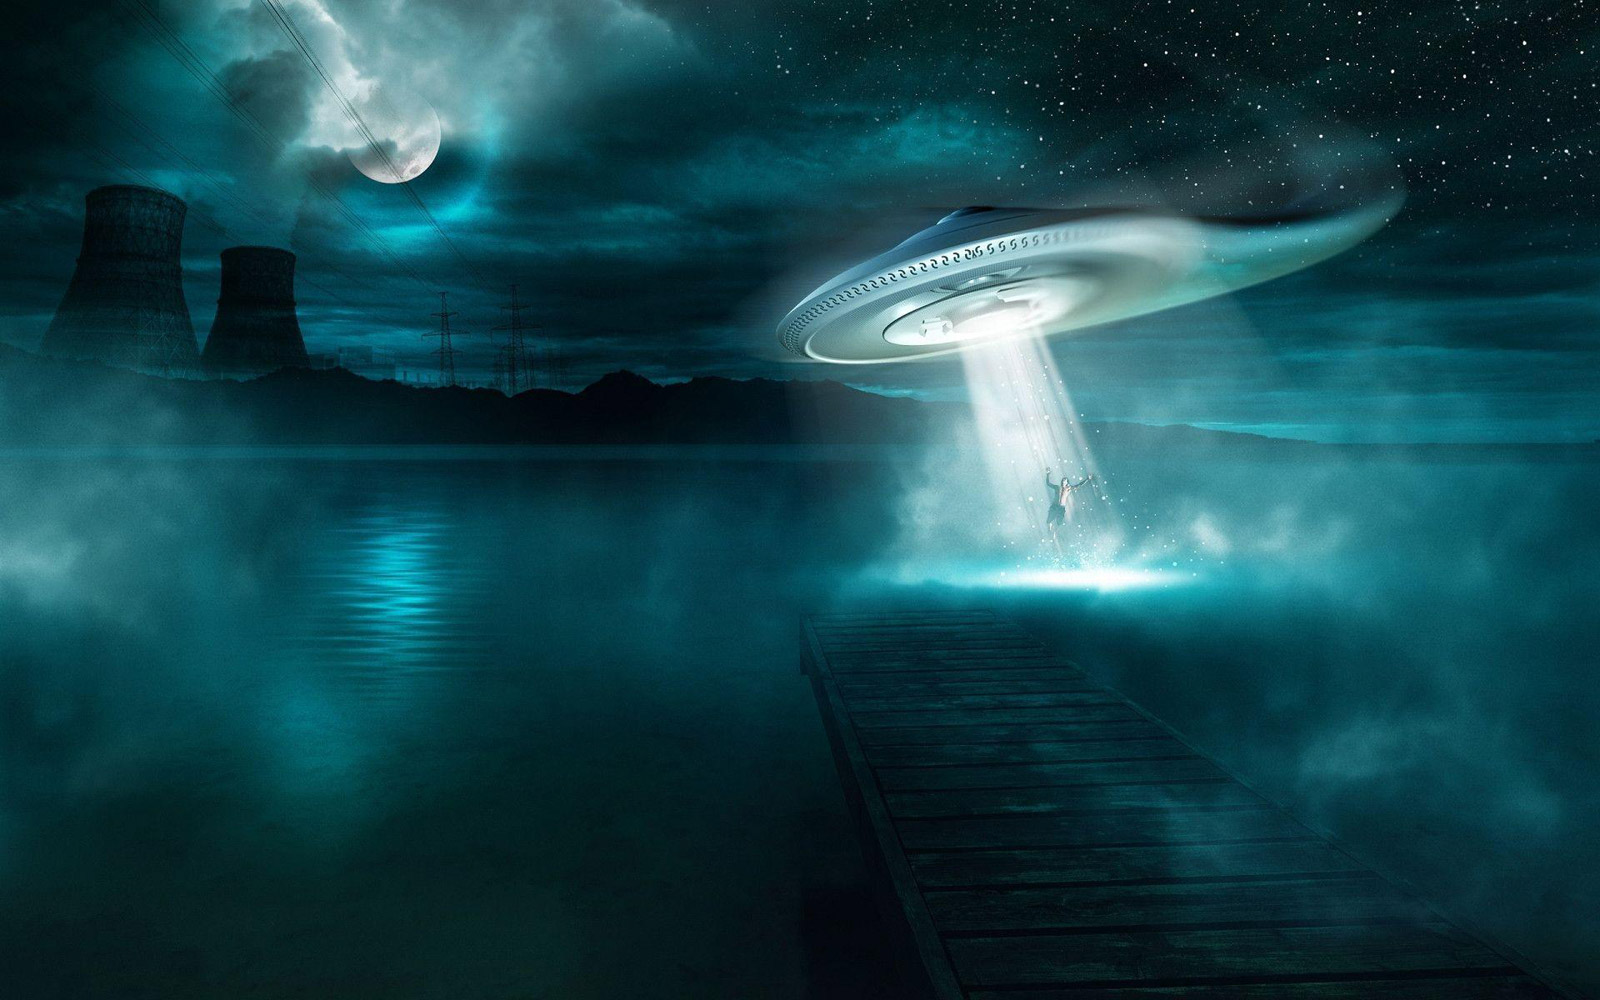 ufo picture zapping human